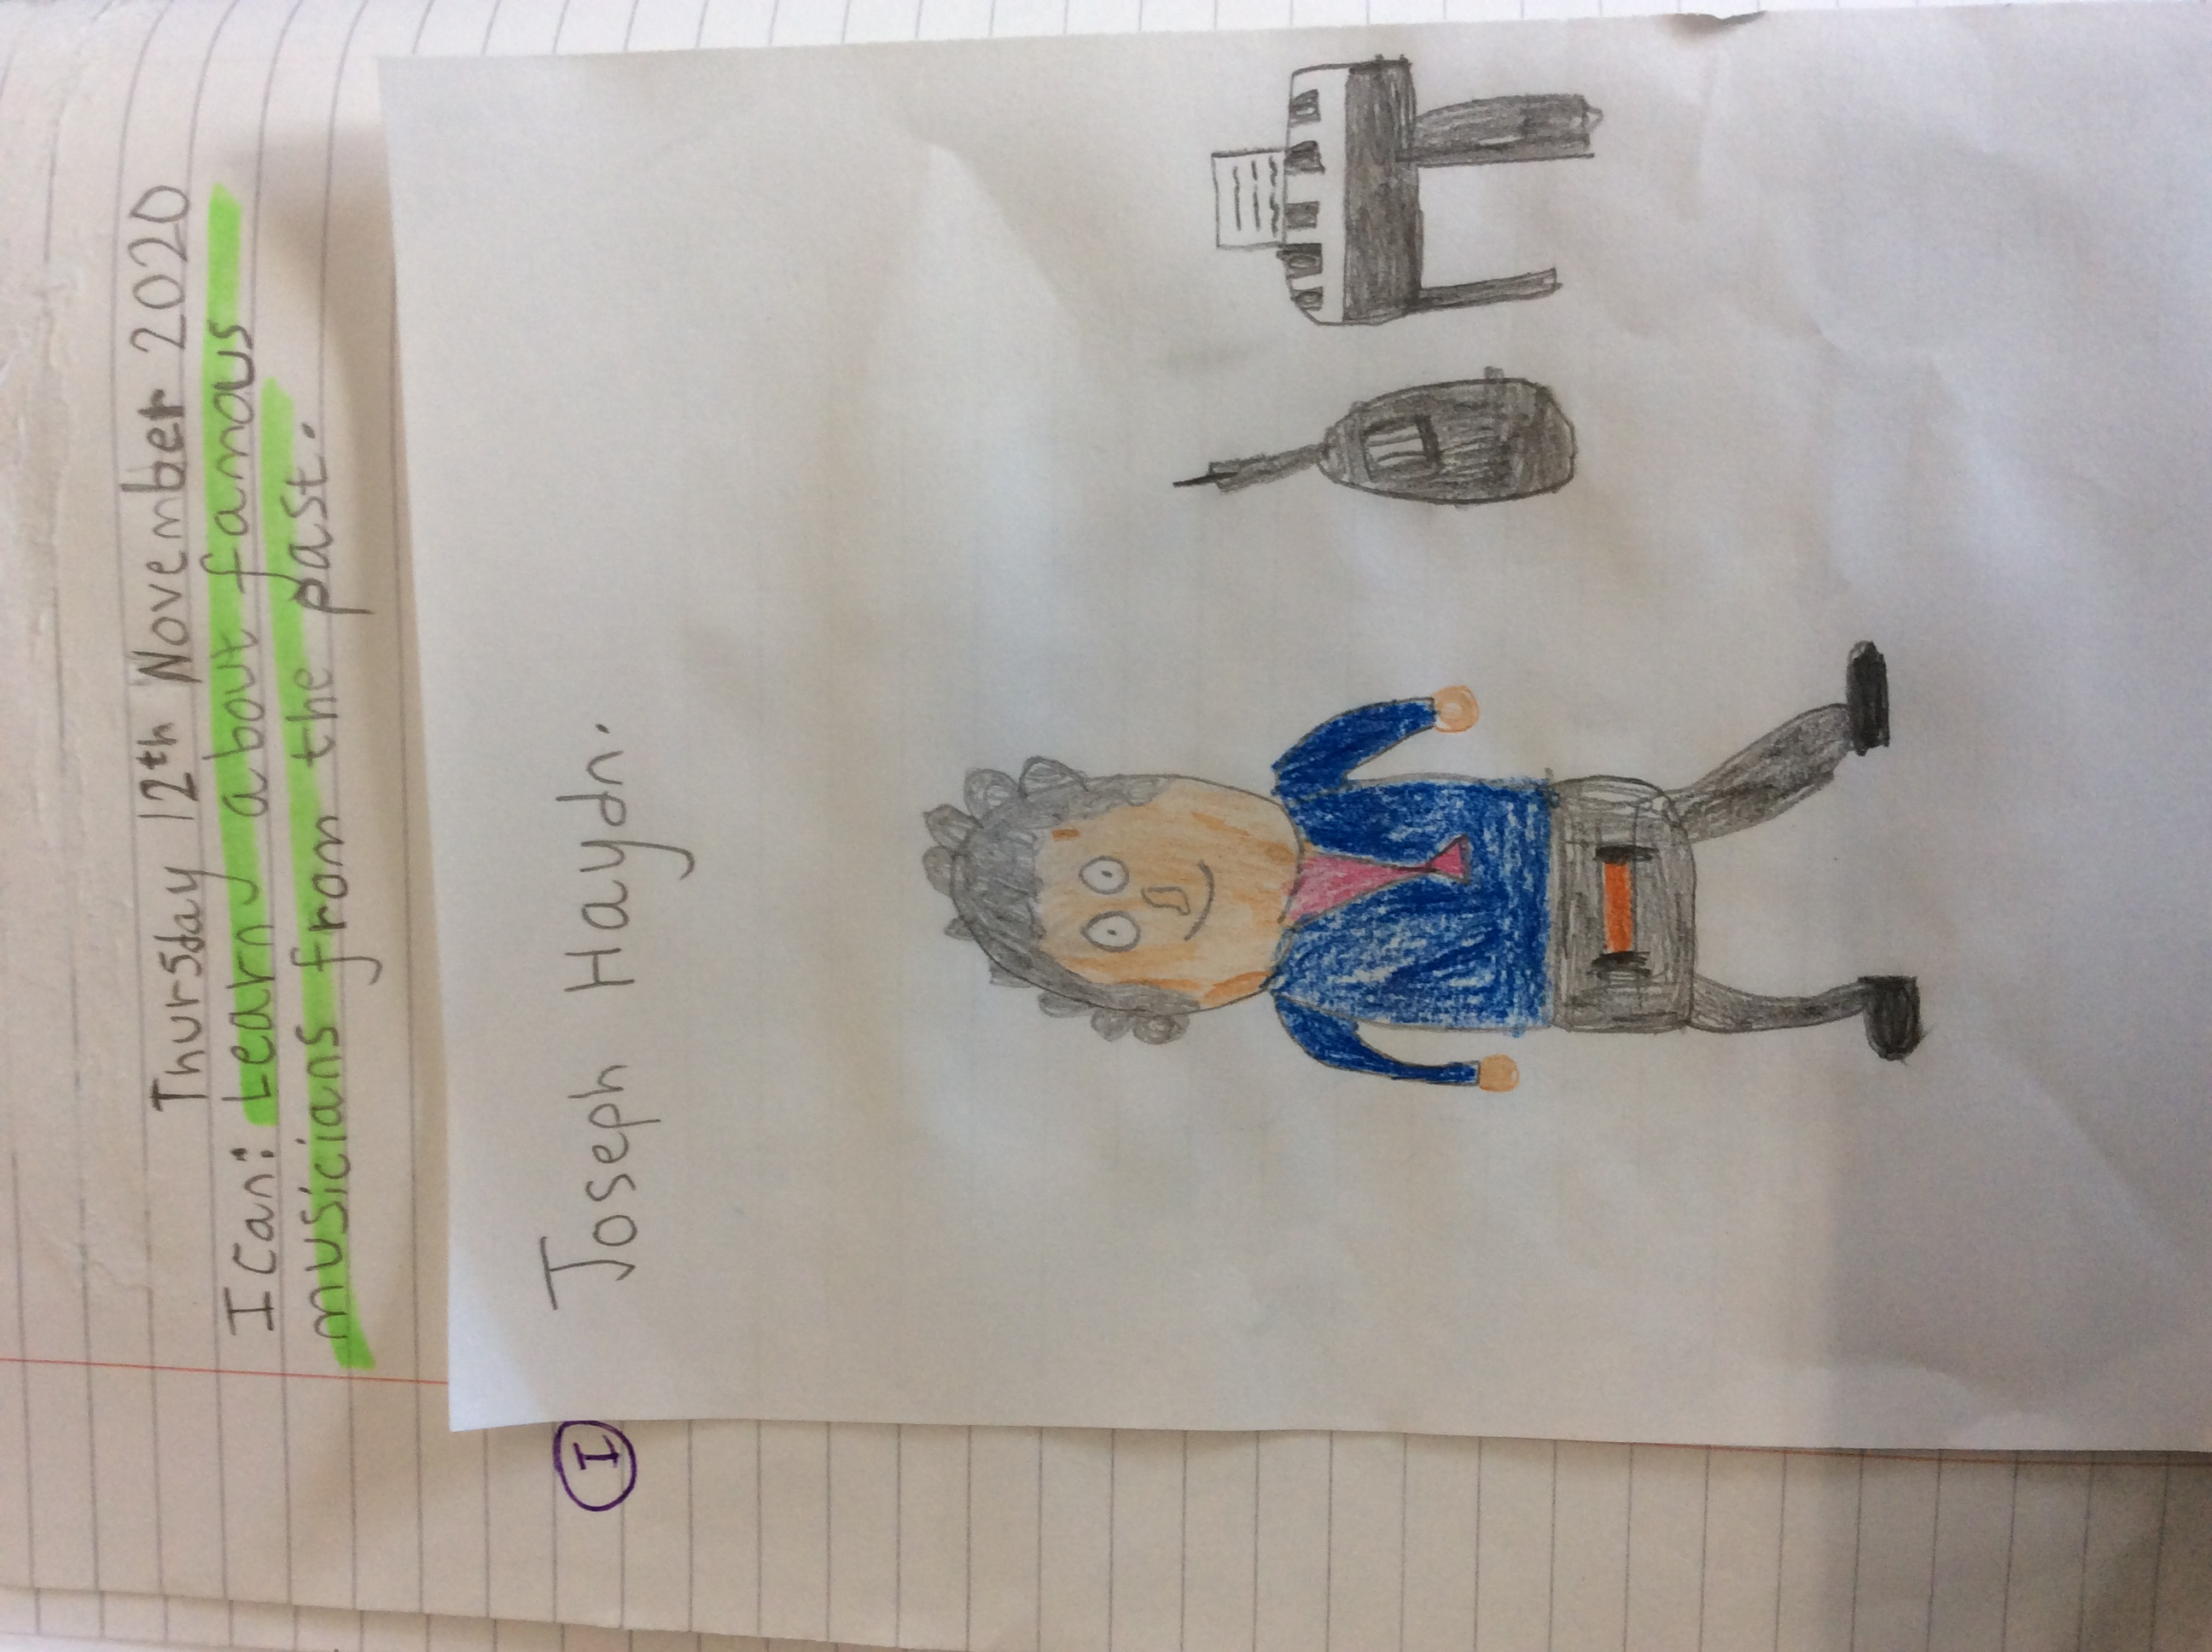 Joshua's fantastic drawing!